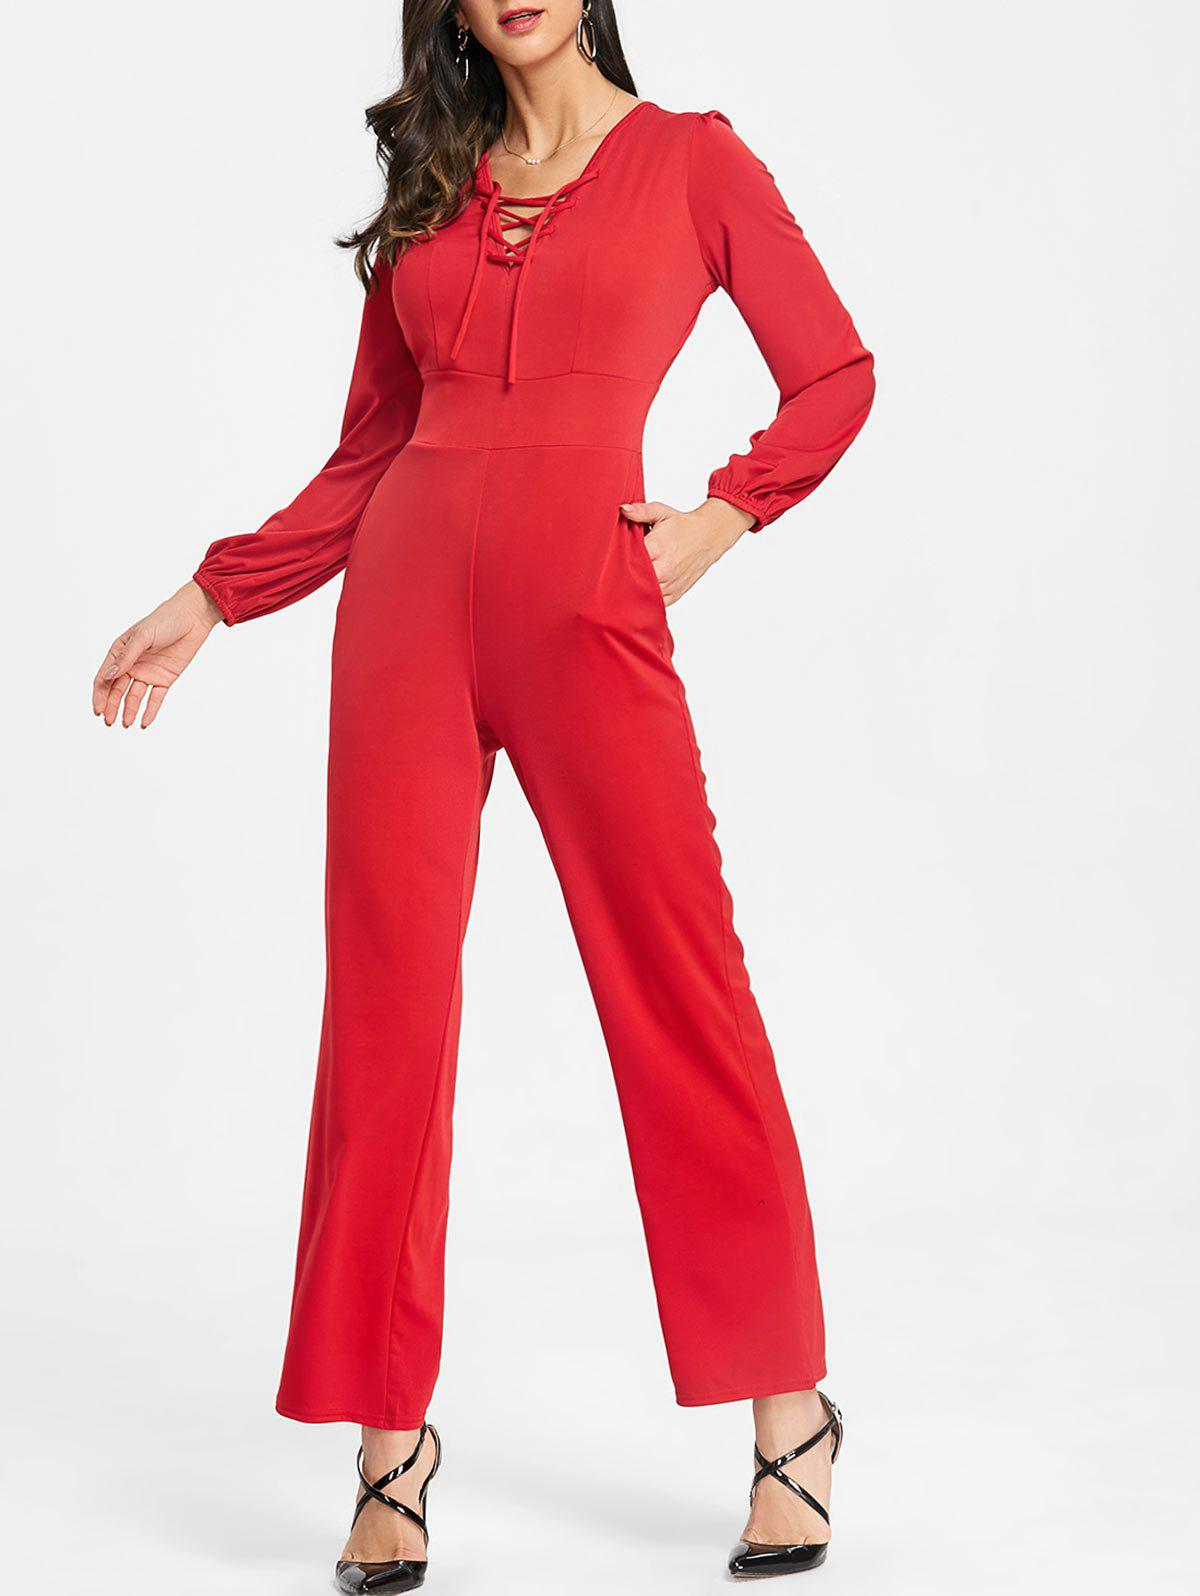 Lace Up Plunging Jumpsuit - RED S